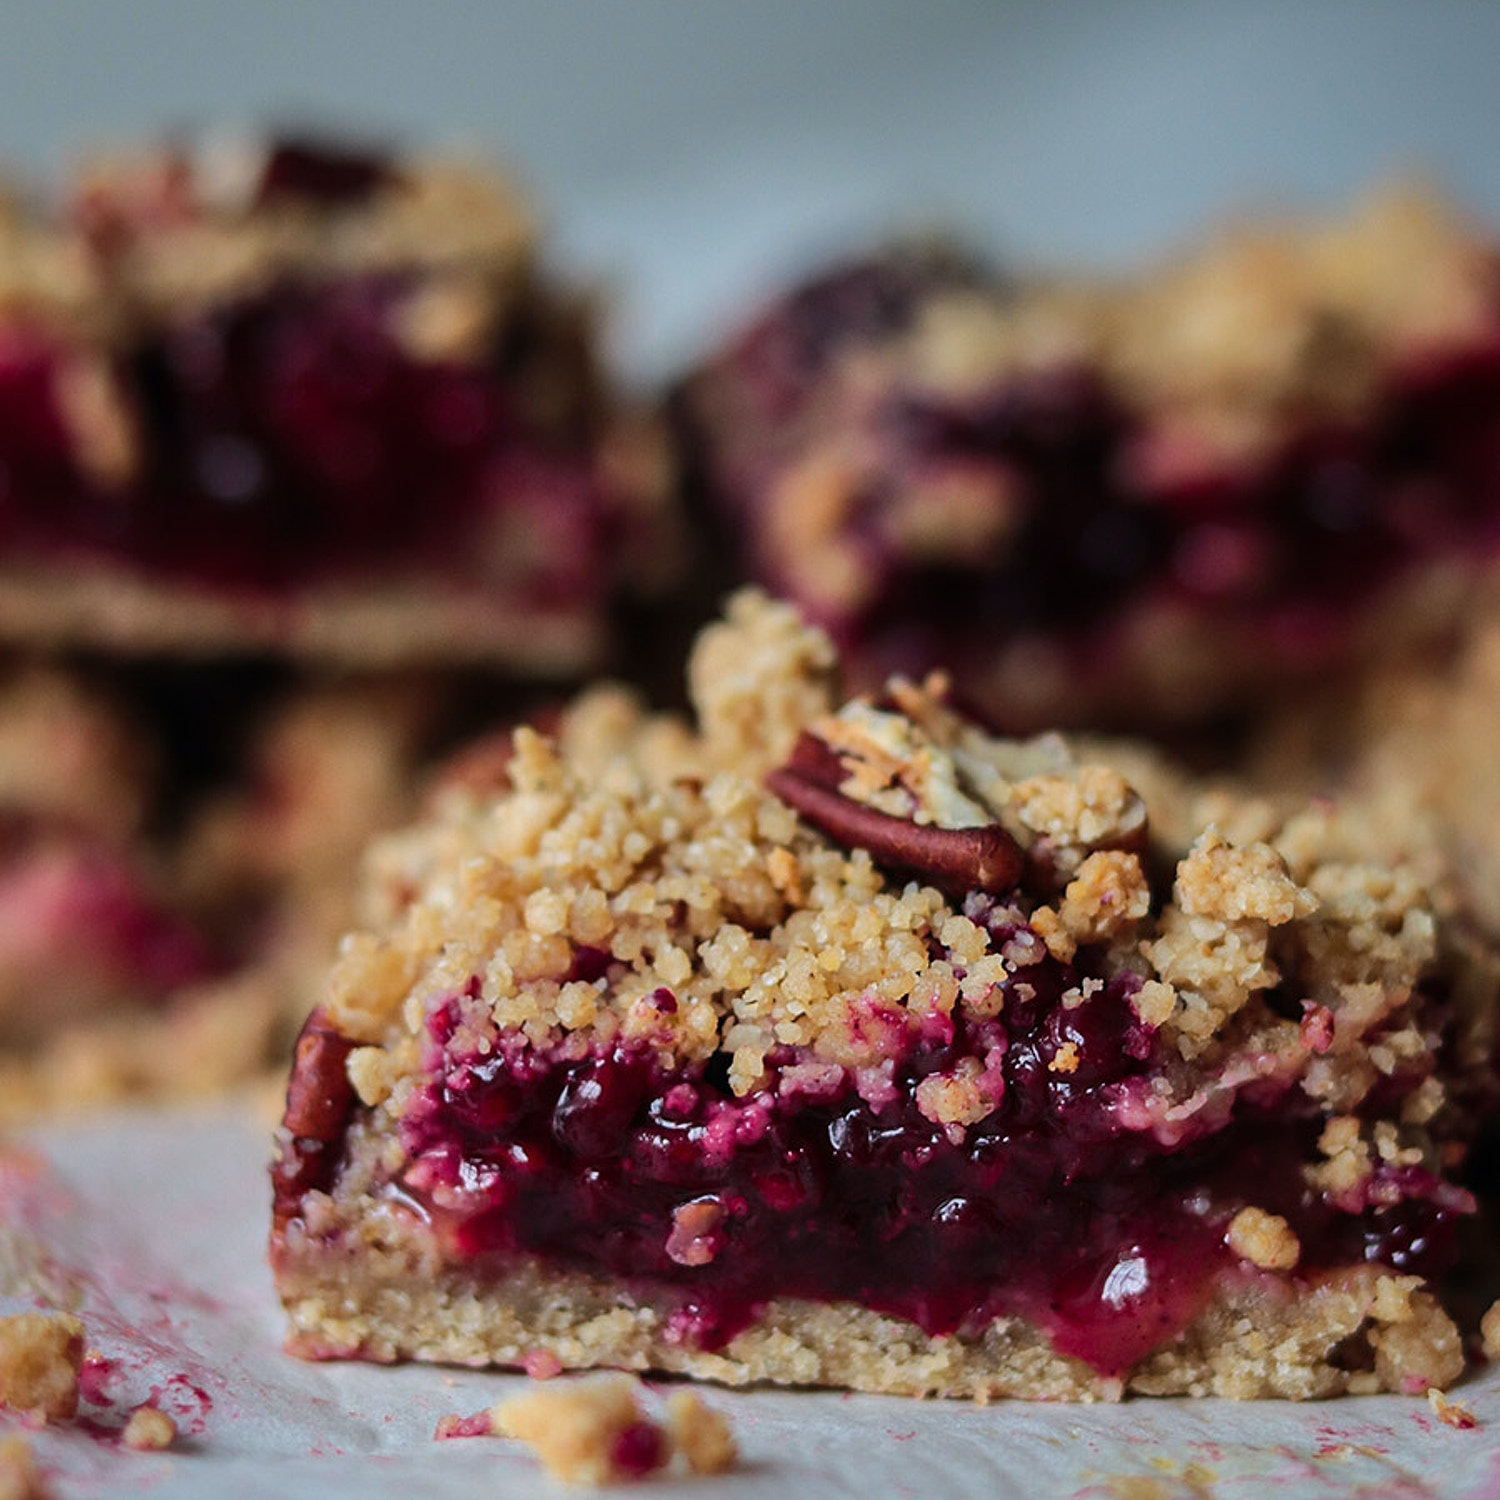 Apple and blackberry crumble bars